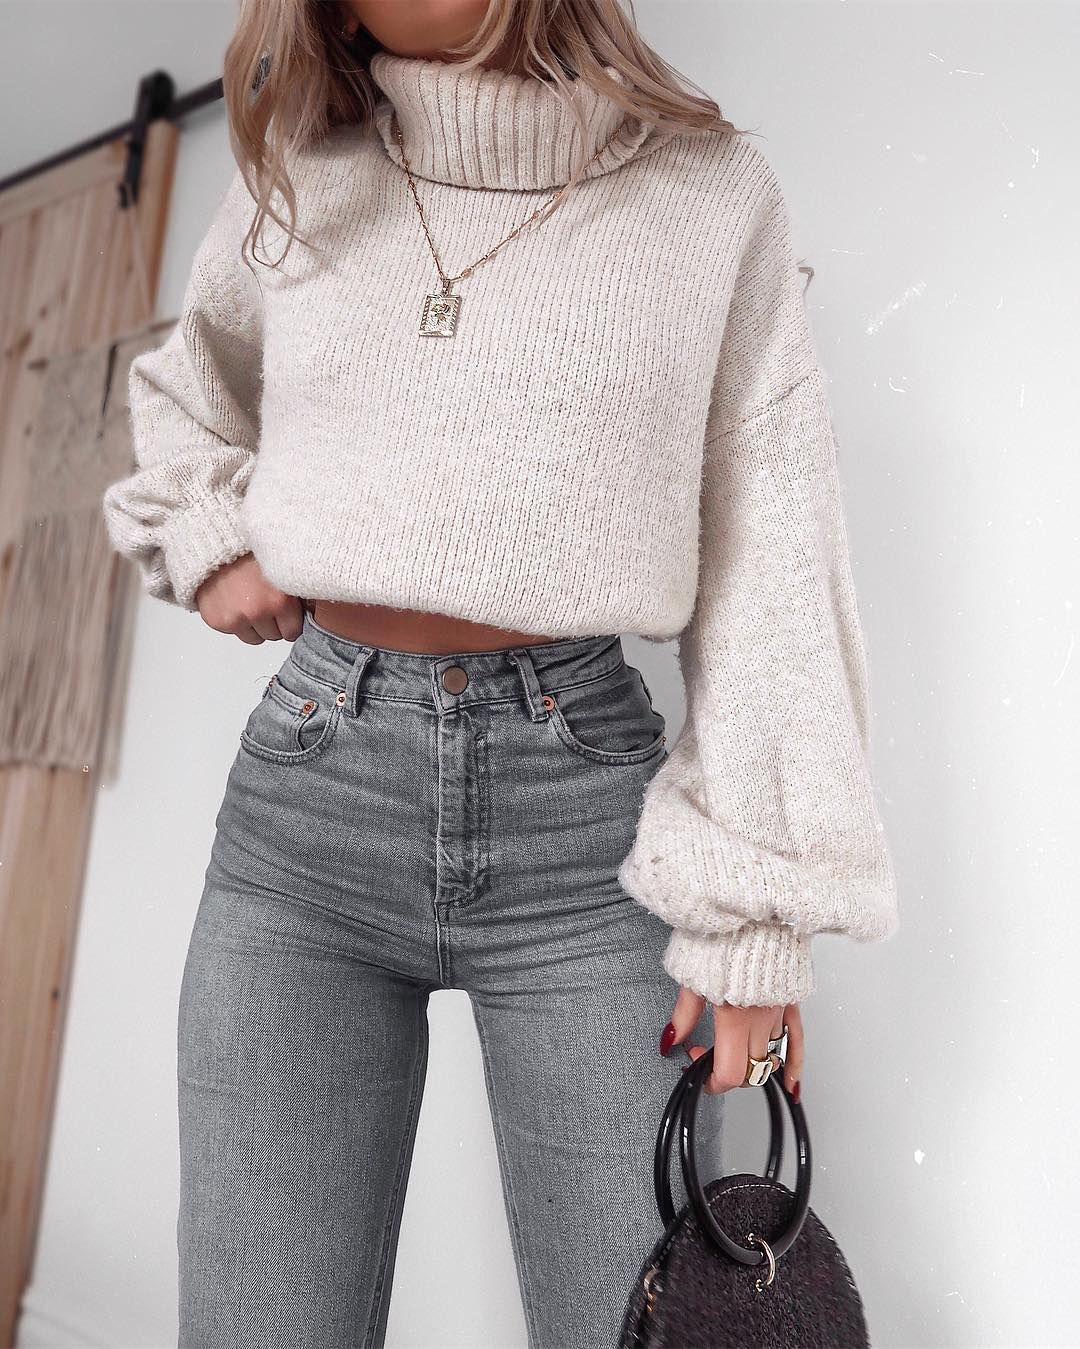 """Lydia Rose on Instagram: """"Can't imagine a life where it's warm enough to wear less than a massive jumper what about you? ? summer pls. • #highwaistedjeans #highwaist…"""""""